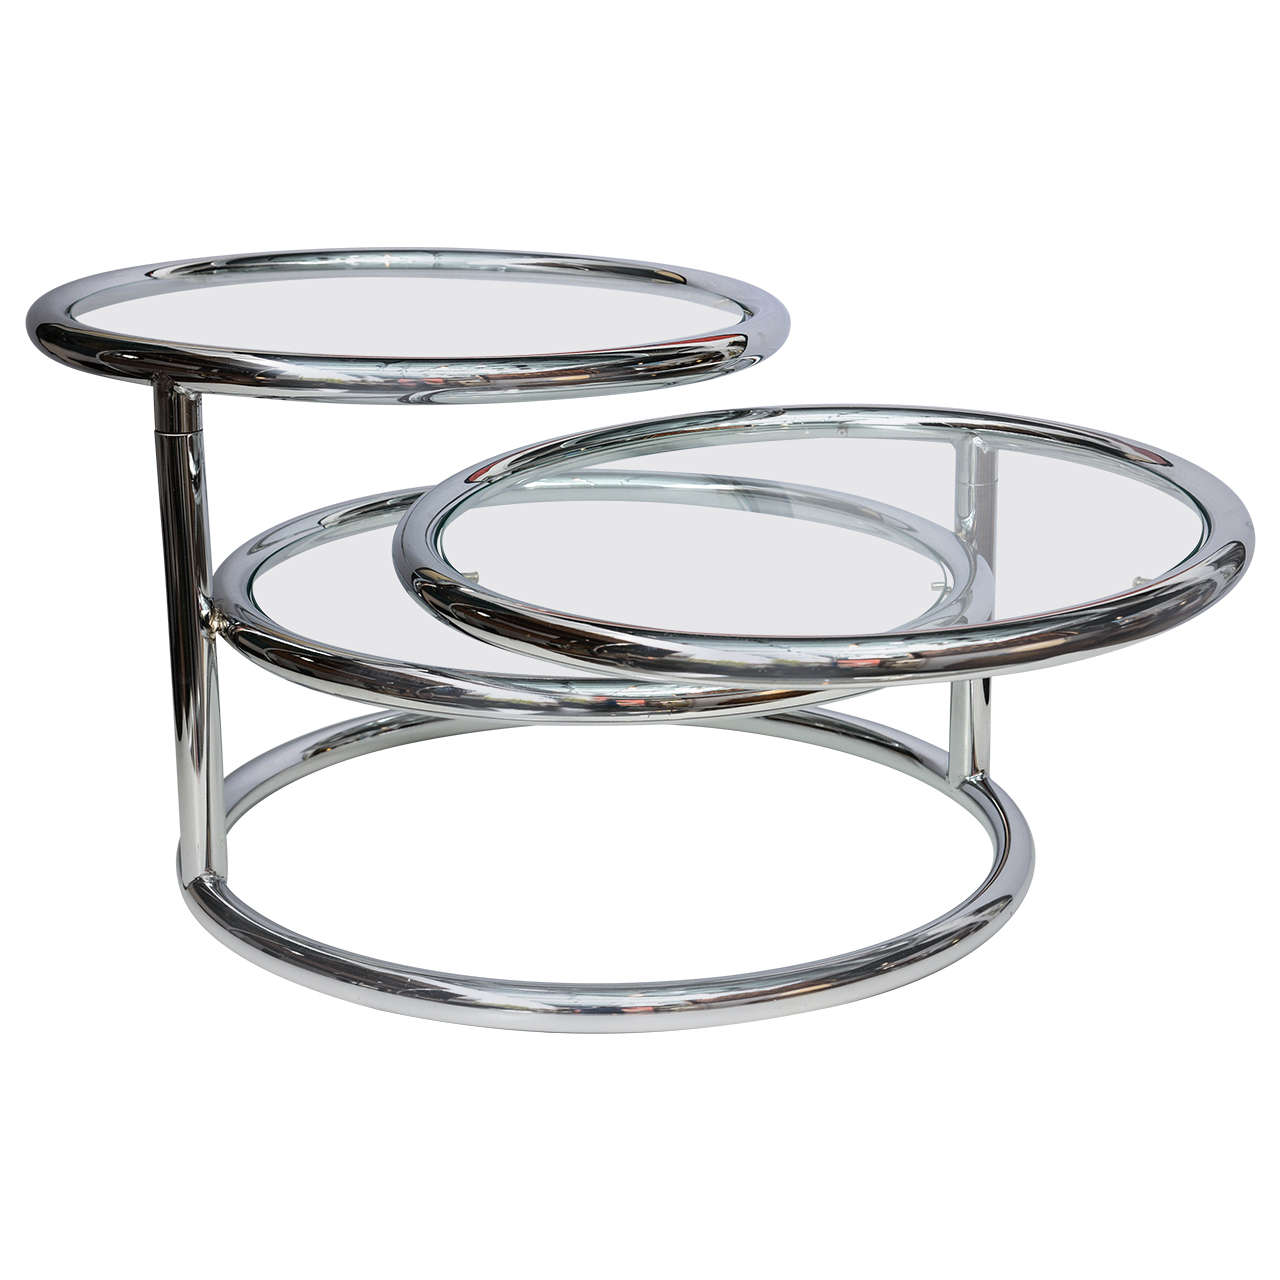 Milo Baughman Style Swivel Tiered Circles Coffee Table For Sale